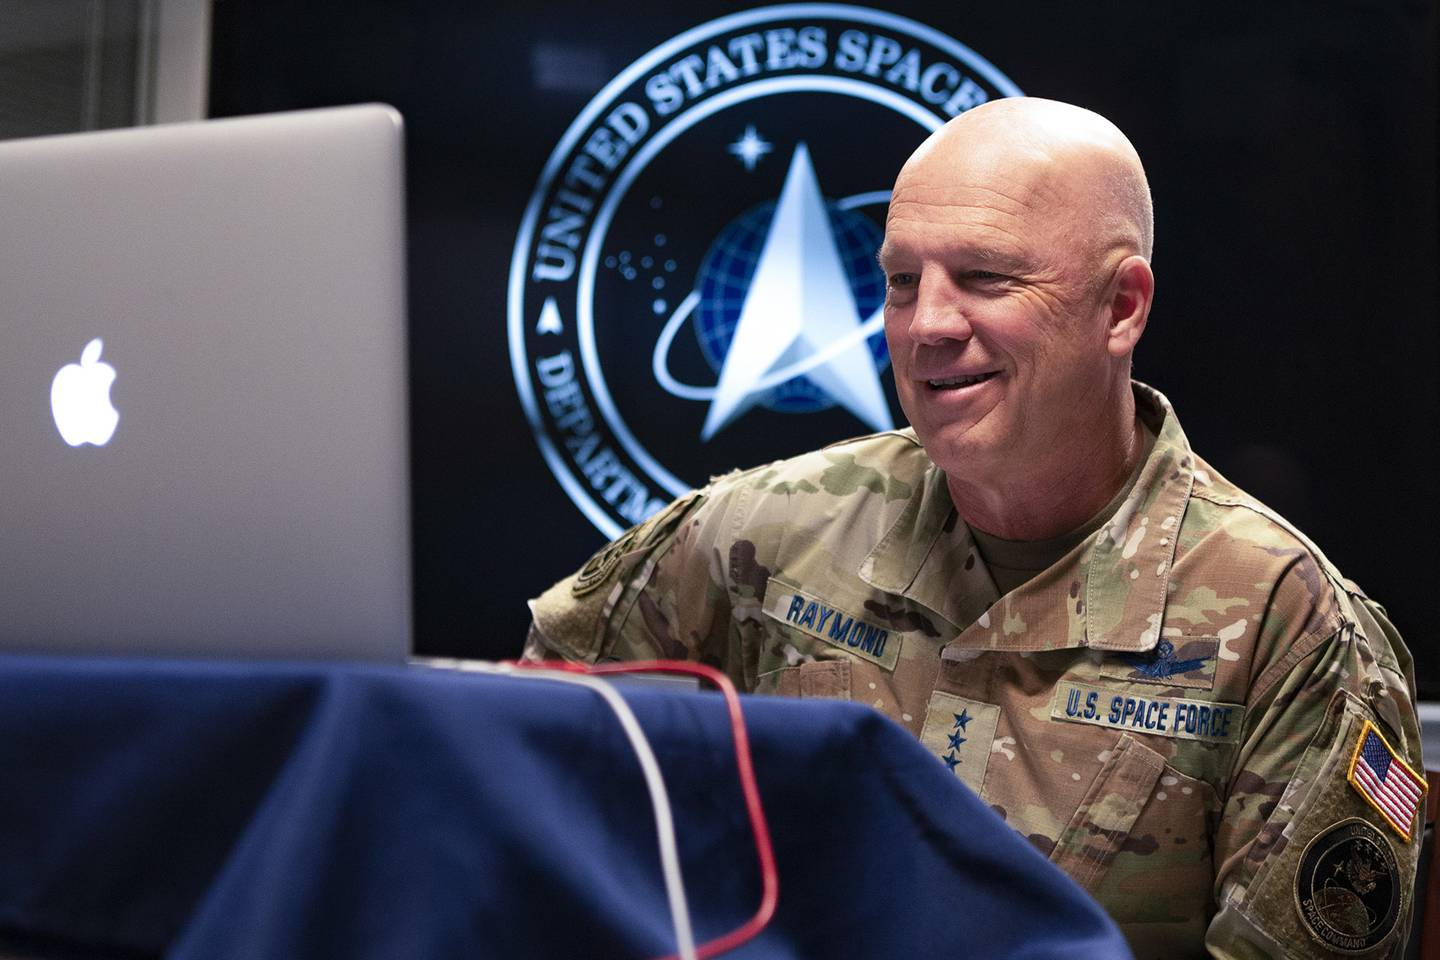 U.S. Space Force's chief of space operations, Air Force Gen. John W. Raymond, participates in a virtual fireside chat with the Center for a New American Security while at the Pentagon on July 24, 2020.